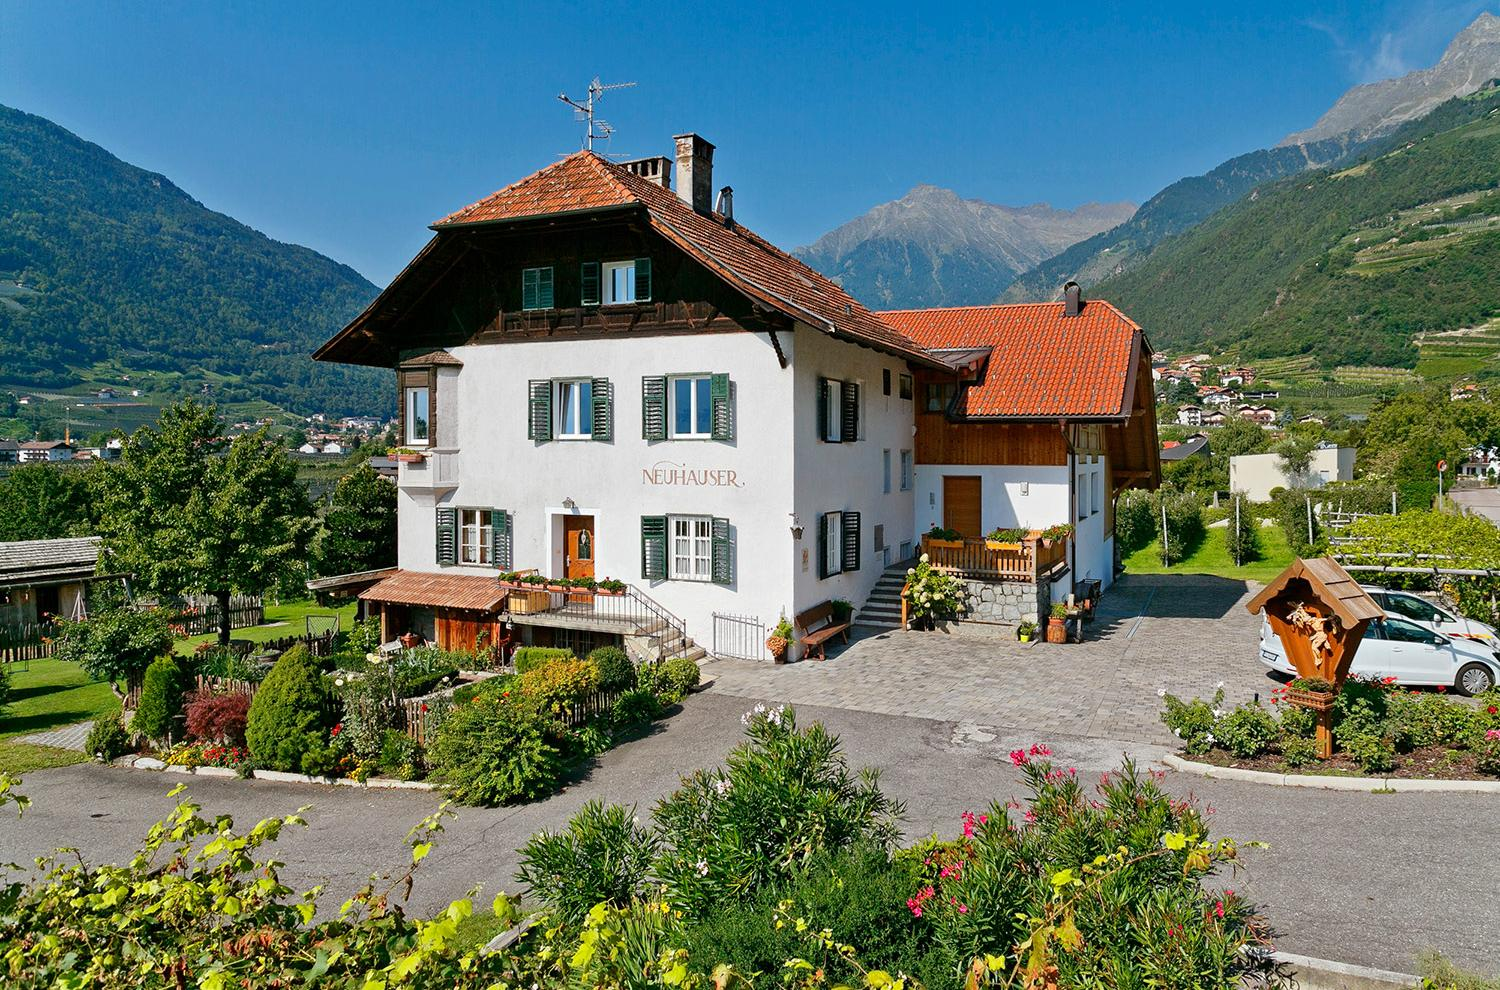 Neuhauserhof - farm in Merano